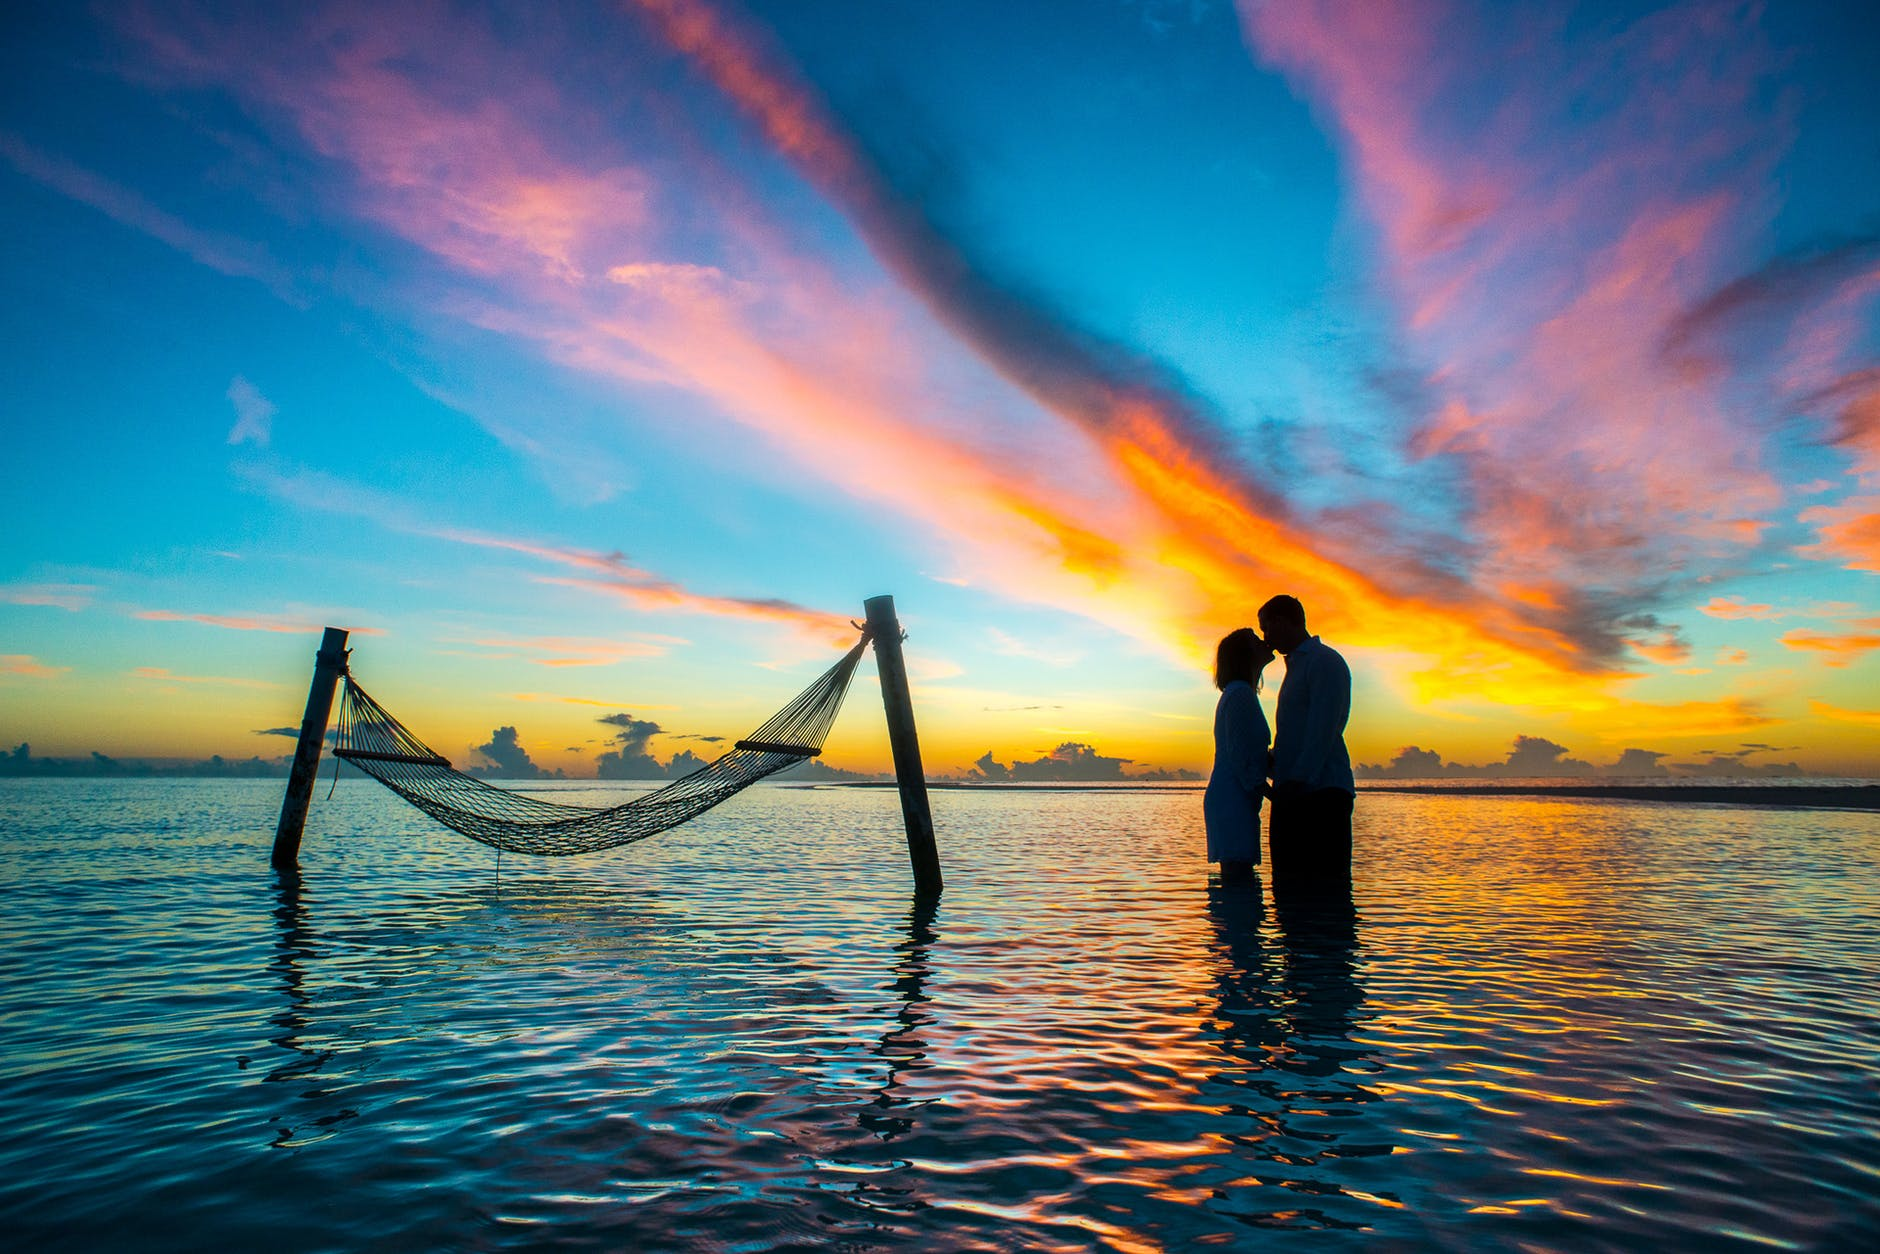 COUPLE AT THE SUNSET